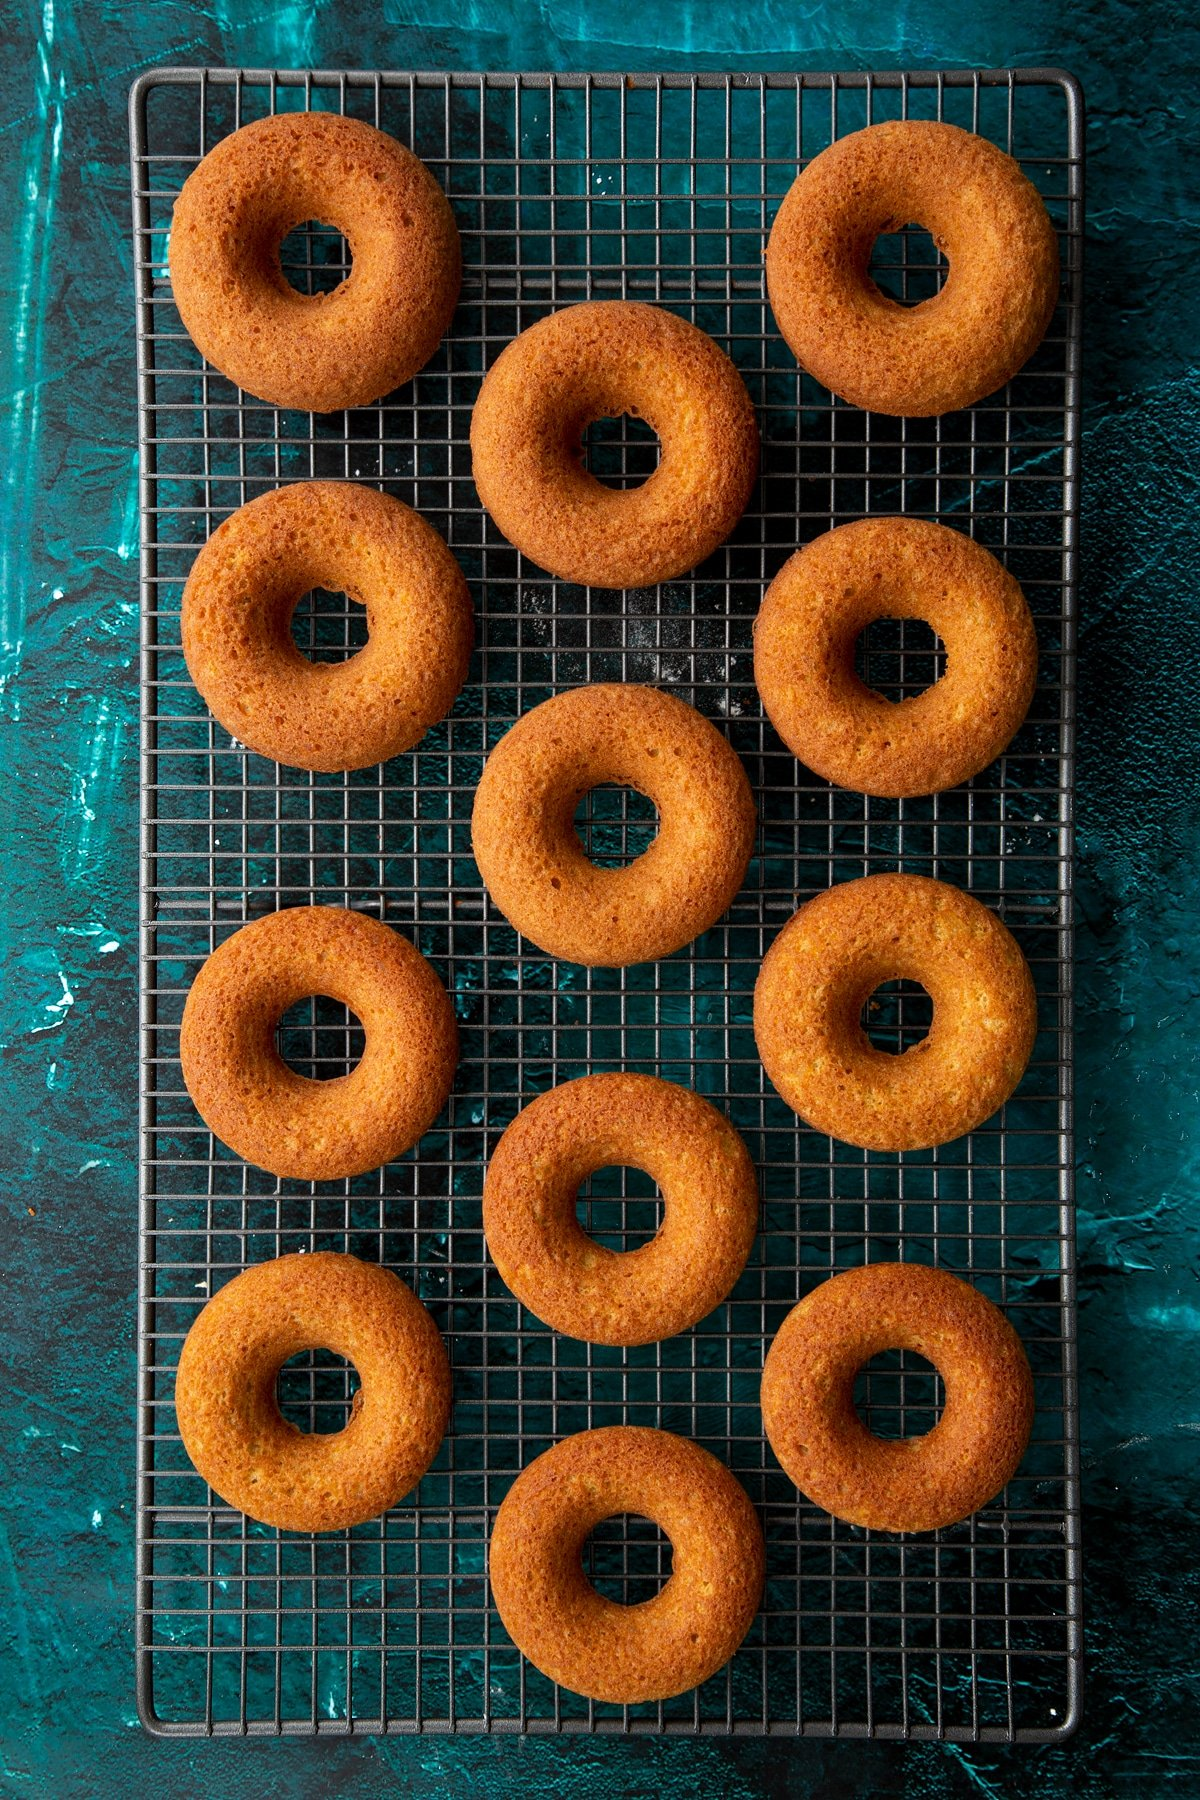 Freshly baked gingerbread donuts on a wire cooling rack.